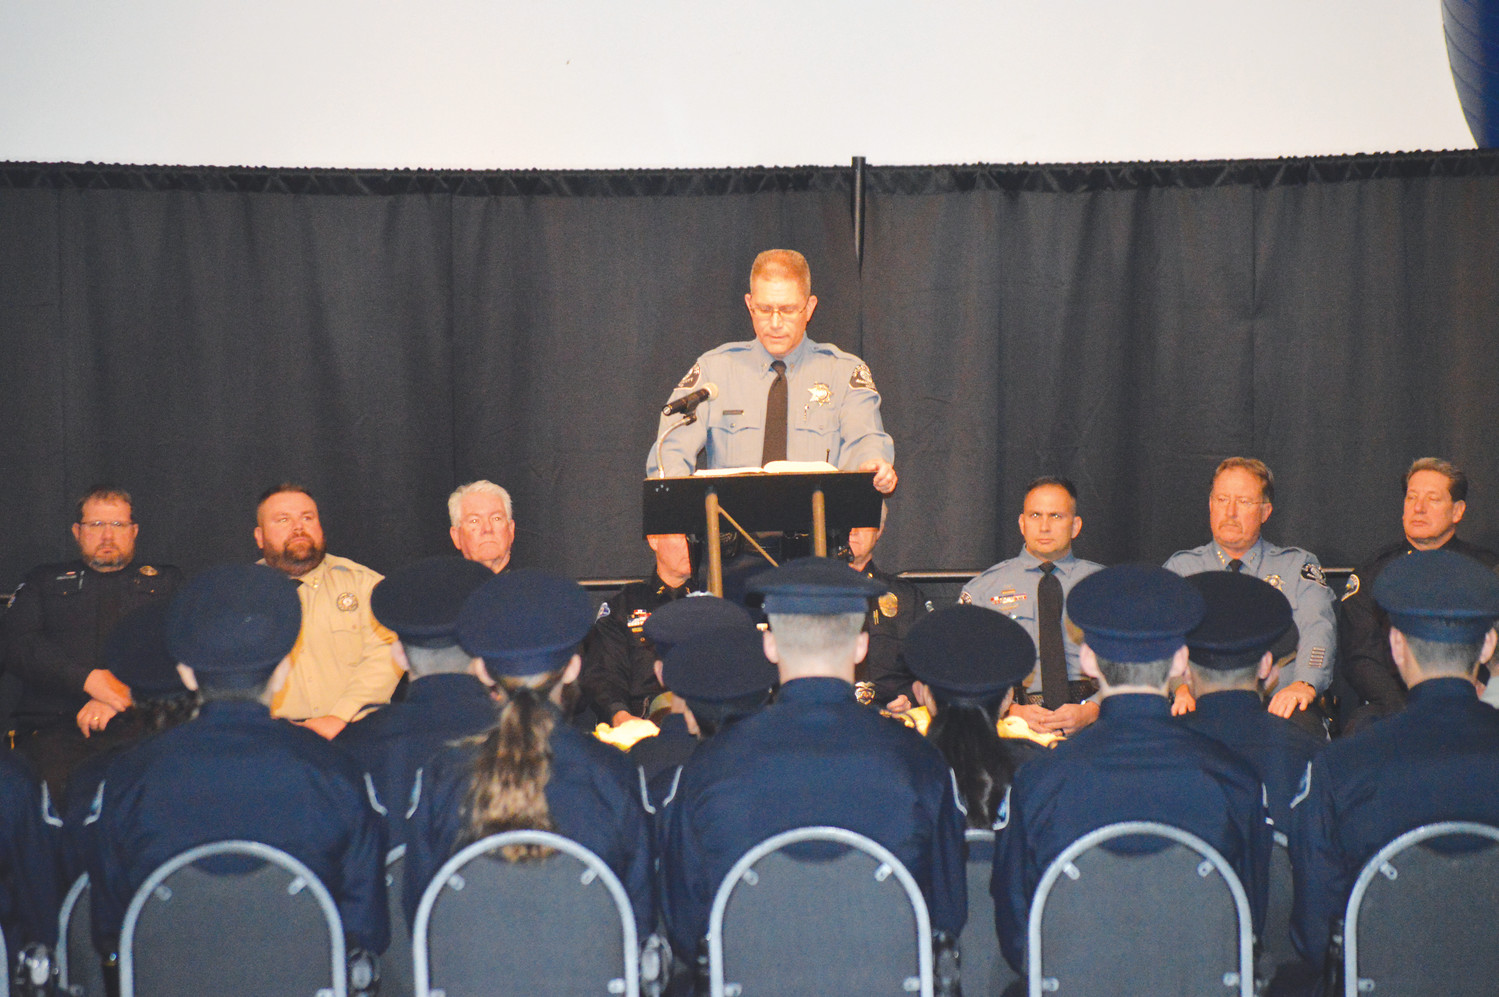 Brian Thompson, lead chaplain for Prairie Community Church in Firestone, Colo., leads the invocation prayers Dec. 7 at the Adams County Fairgrounds in Brighton as the 22nd class of the Adams County Sheriff's Academy graduated.